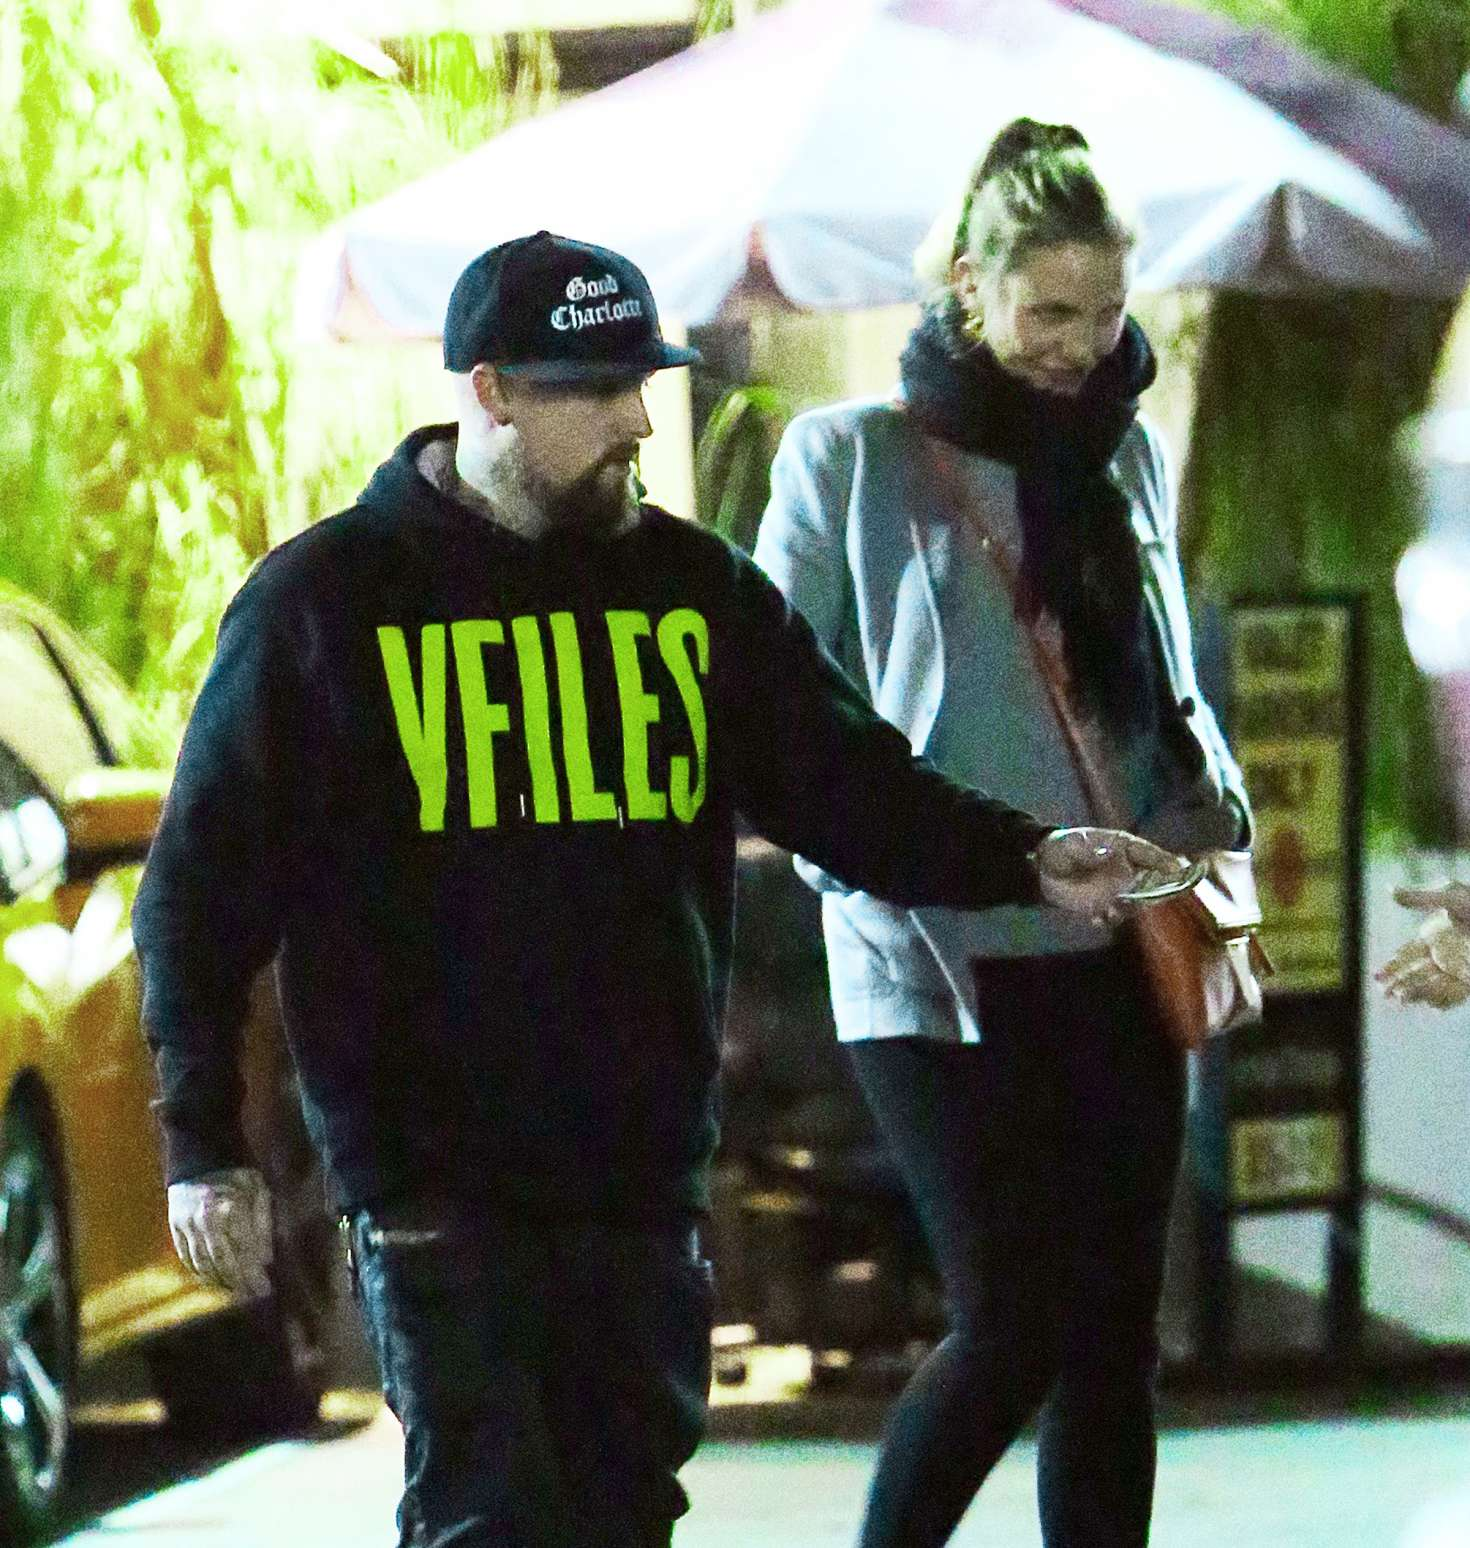 Cameron Diaz and husband Benji Madden on dinner date in ...Cameron Diaz Husband